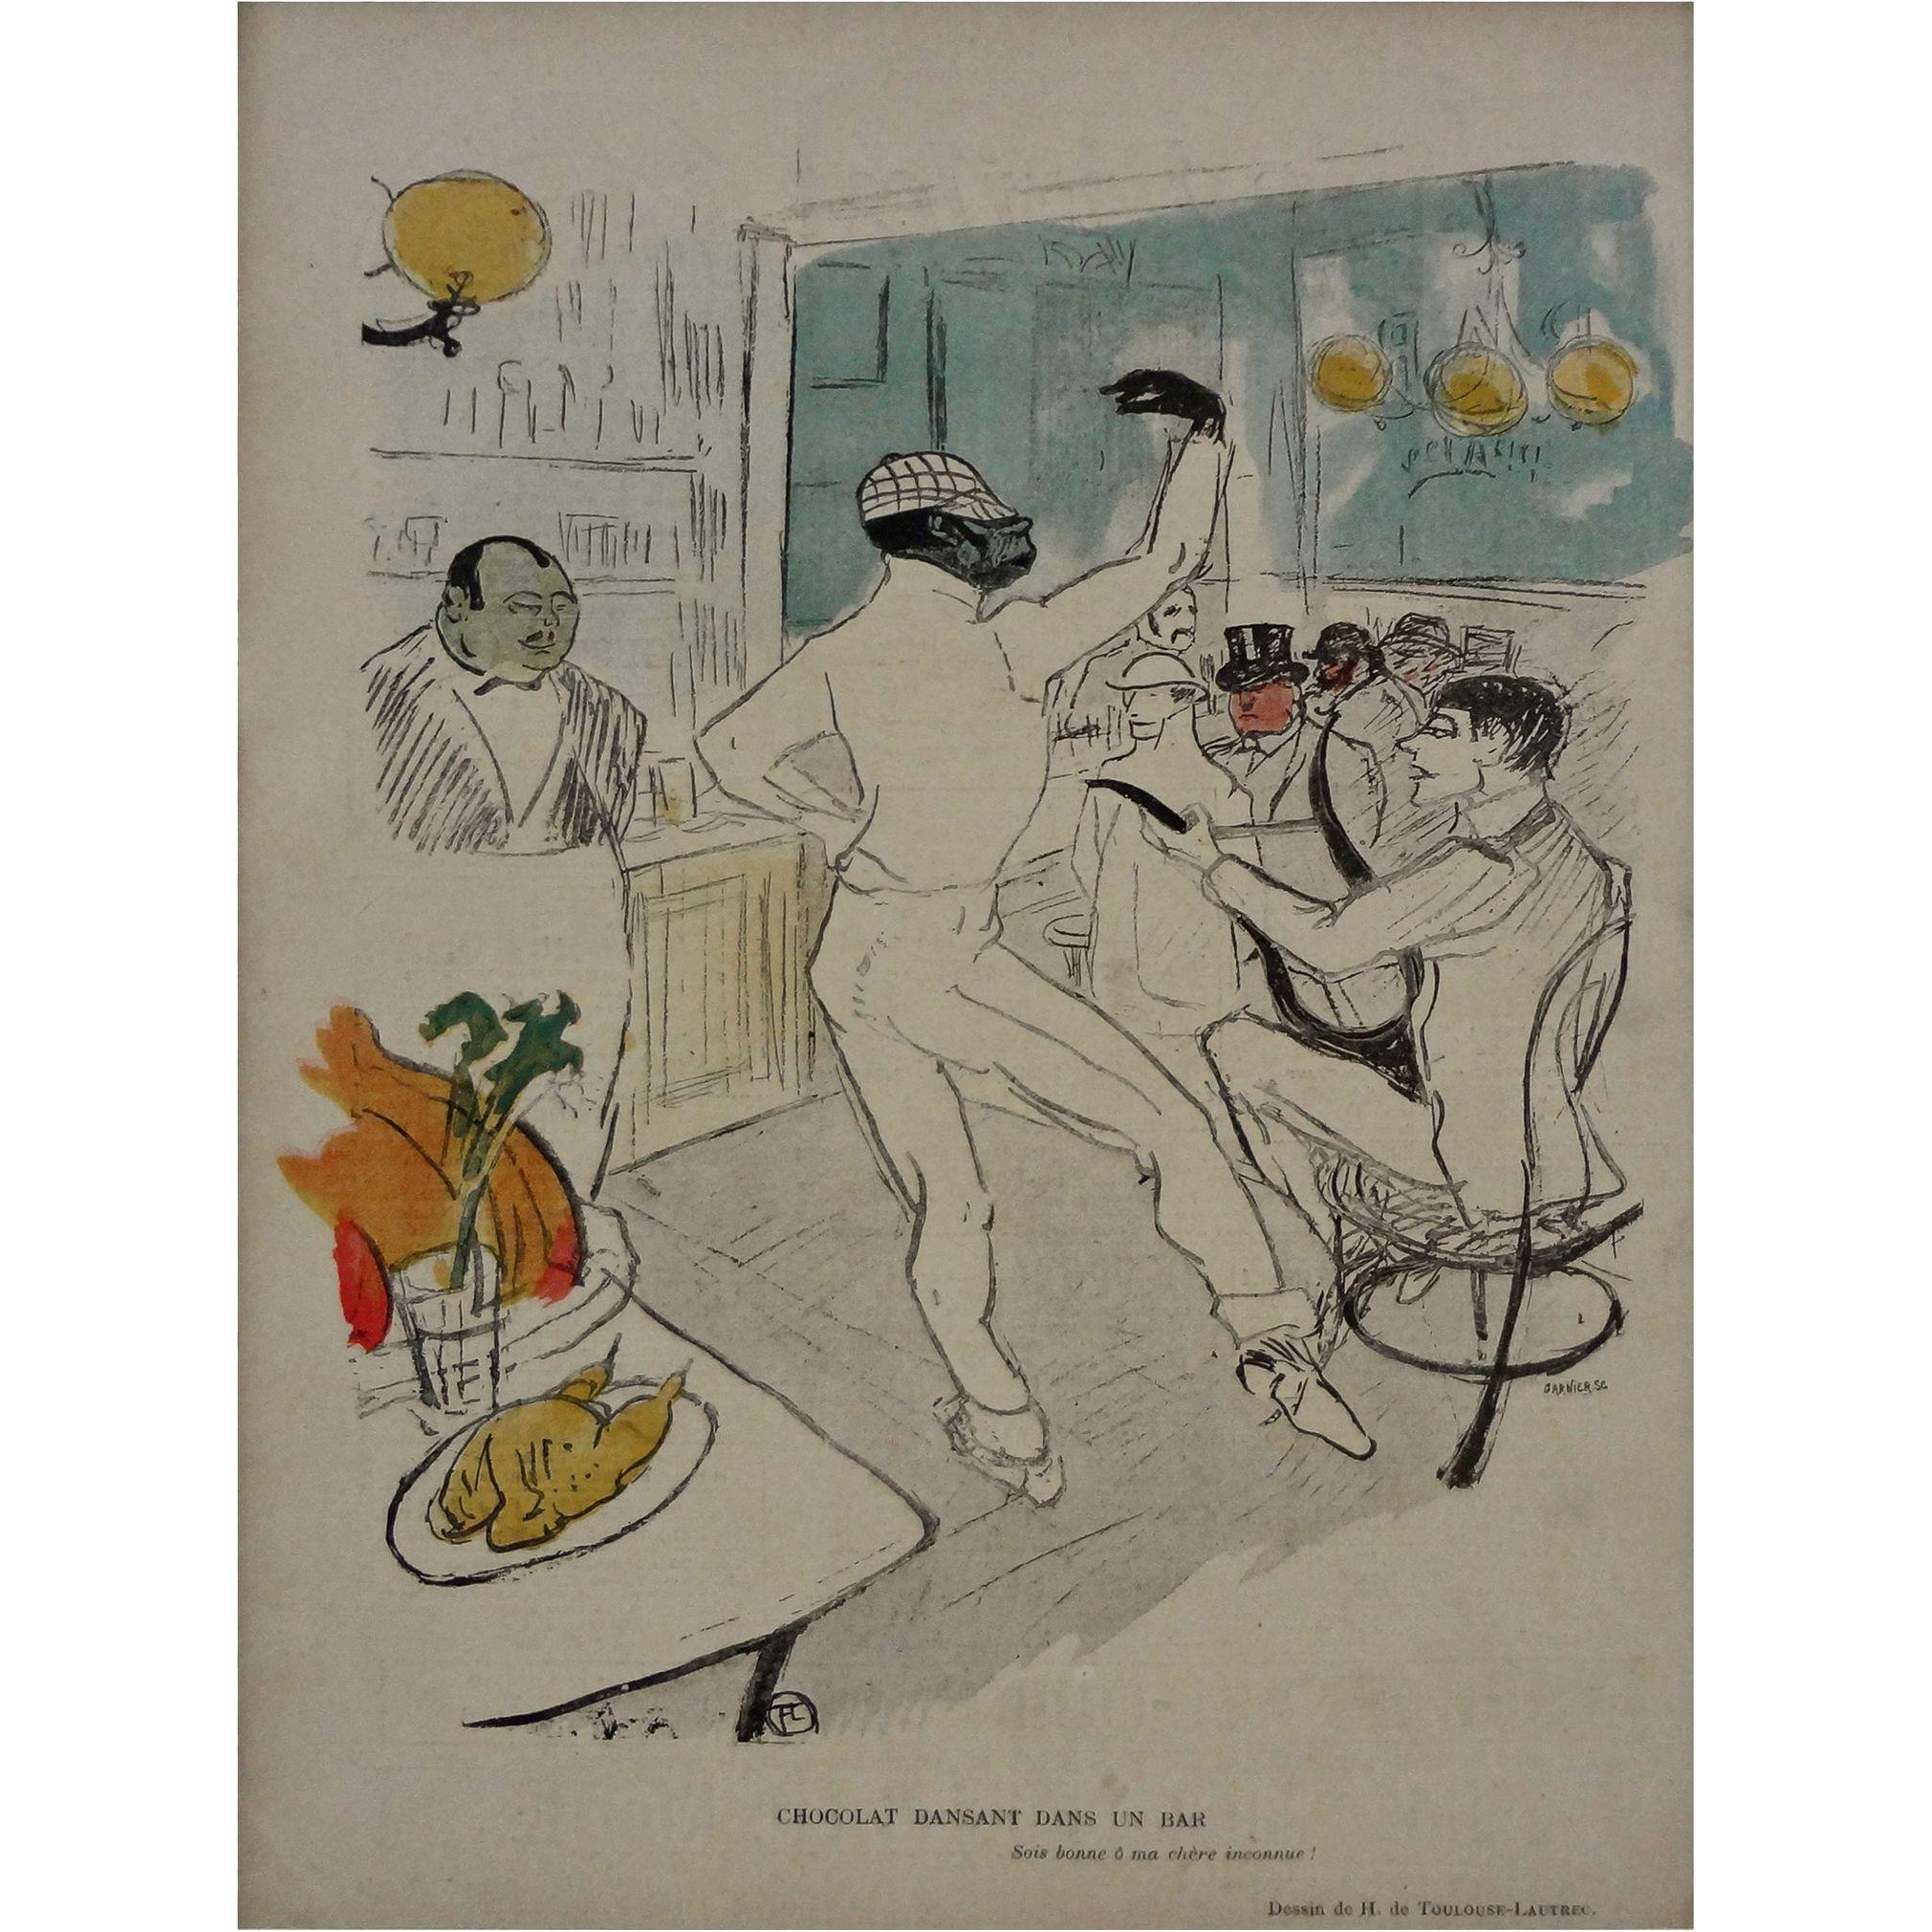 Chocolat Dansant dans un Bar after Henri de Toulouse-Lautrec - 1896, France